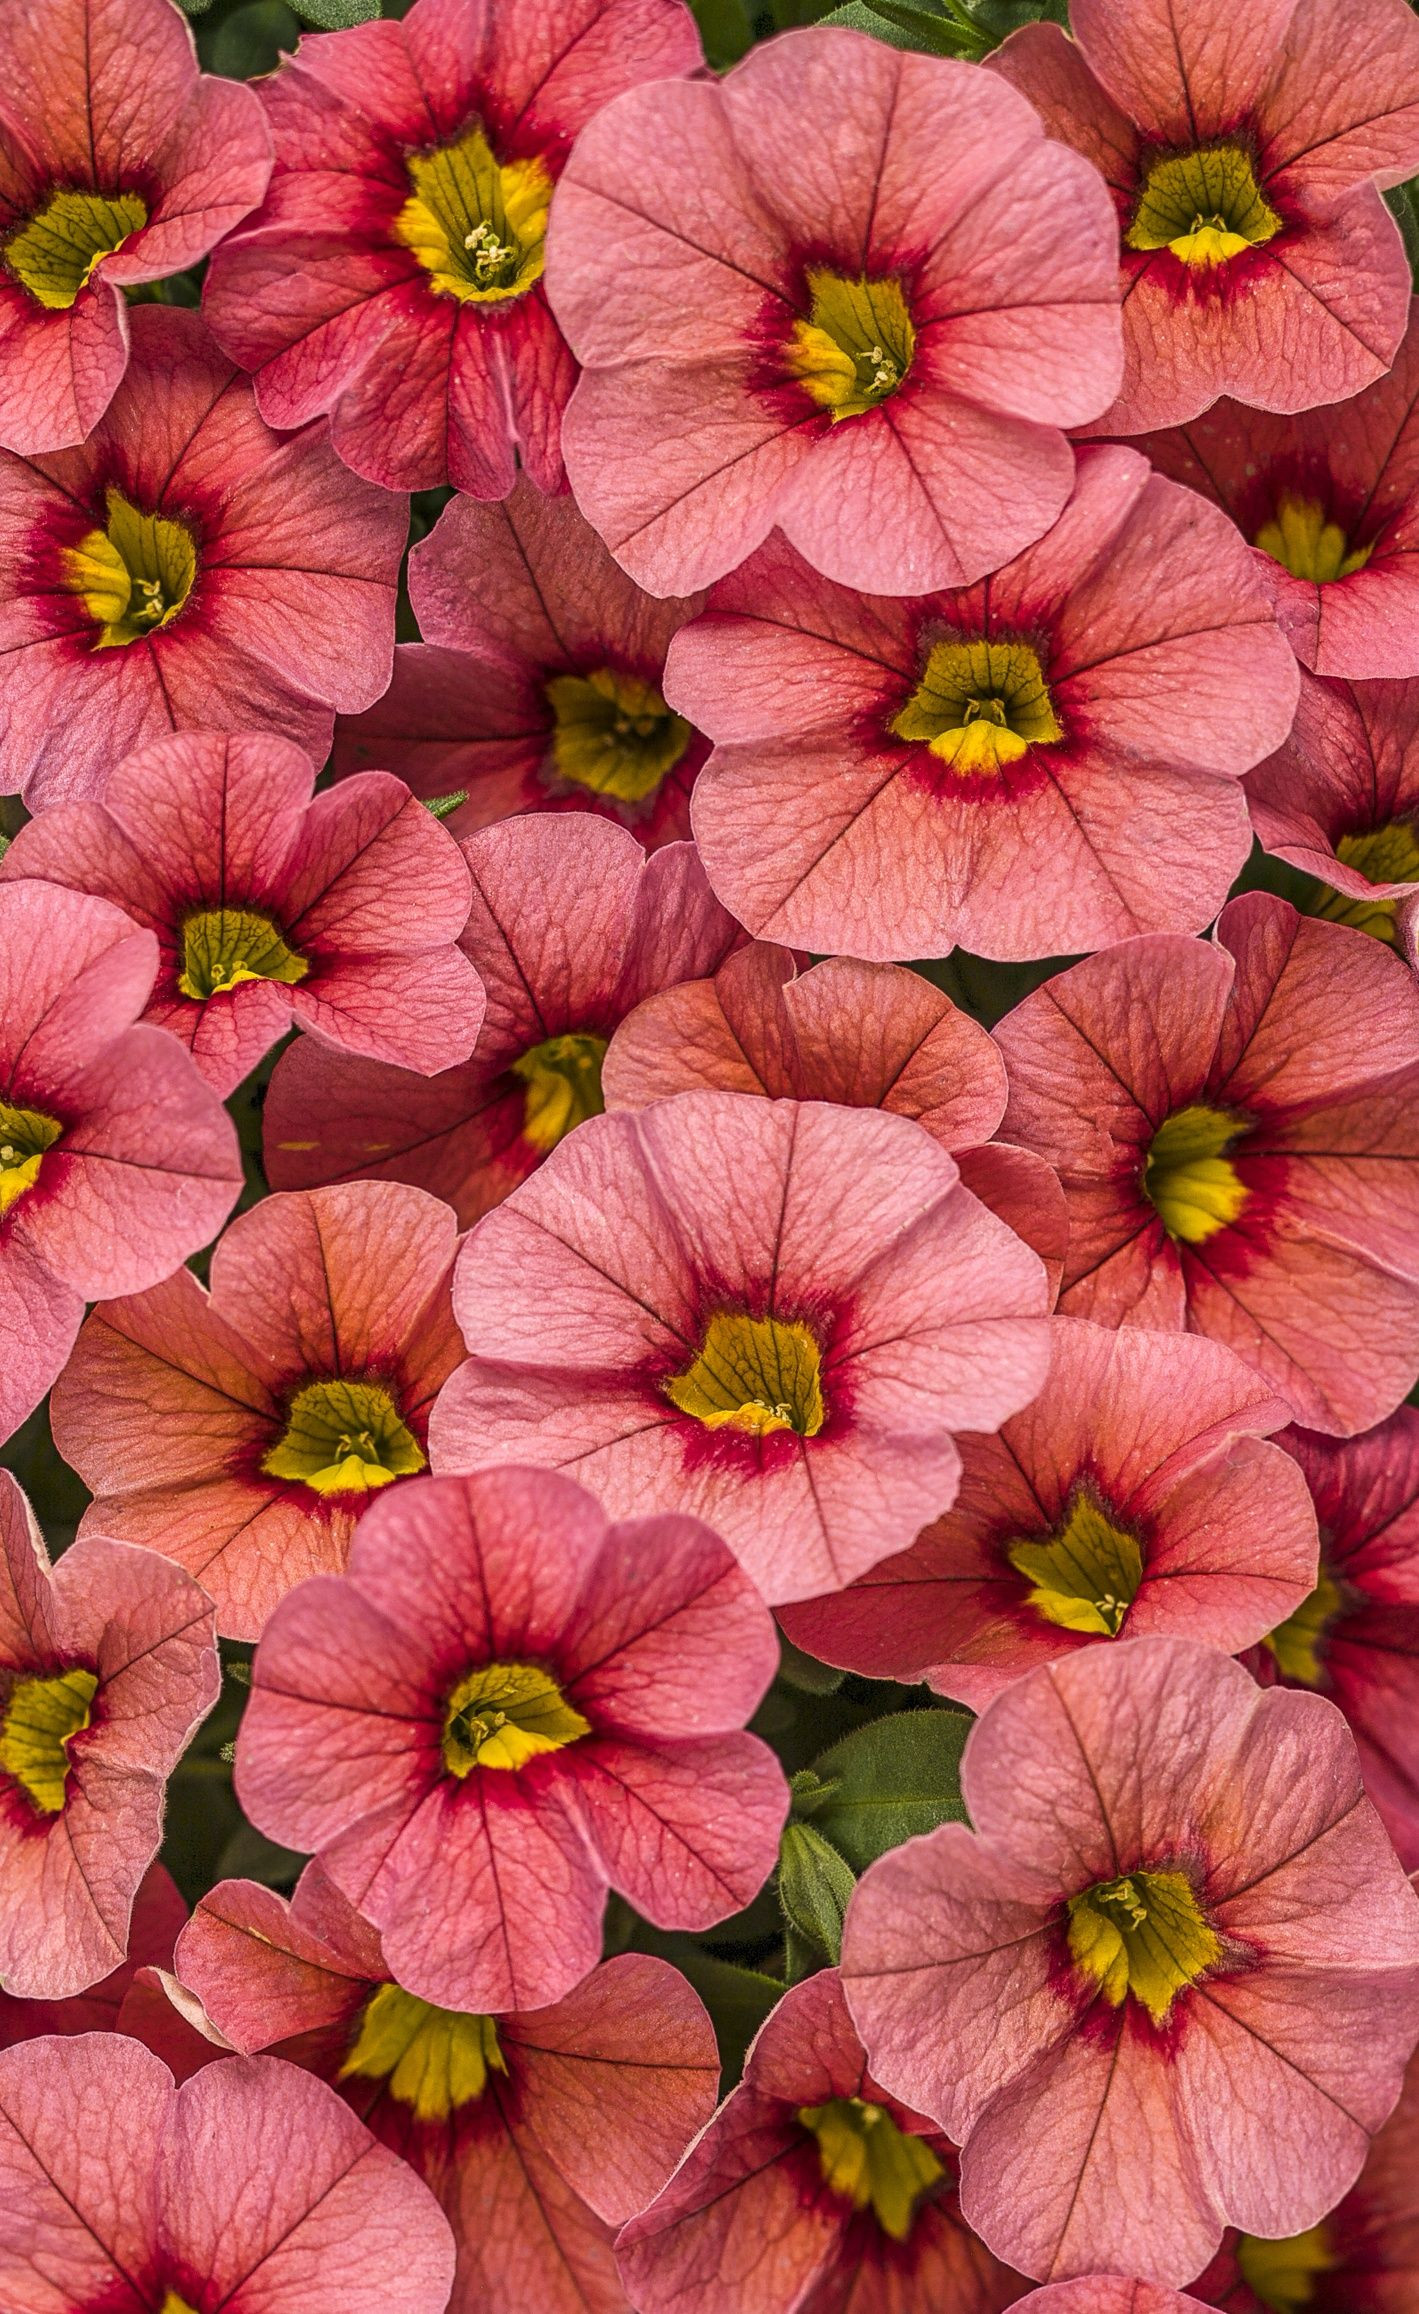 Proven Winners Superbells Coralina Calibrachoa hybrid pink red coral pink plant details information and resources